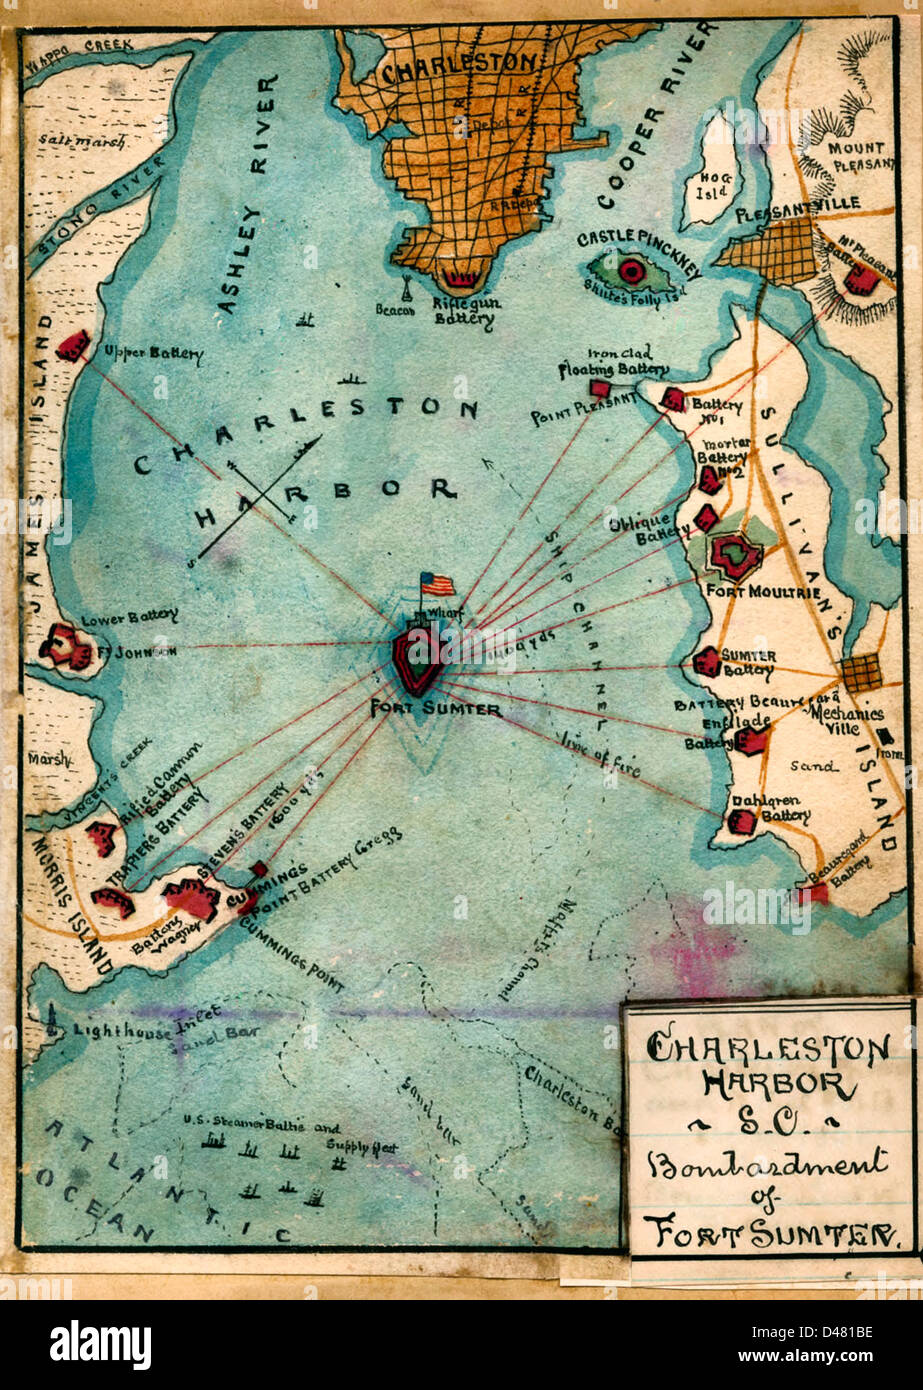 MAP Charleston Harbor South Carolina Bombardment of Fort Sumter